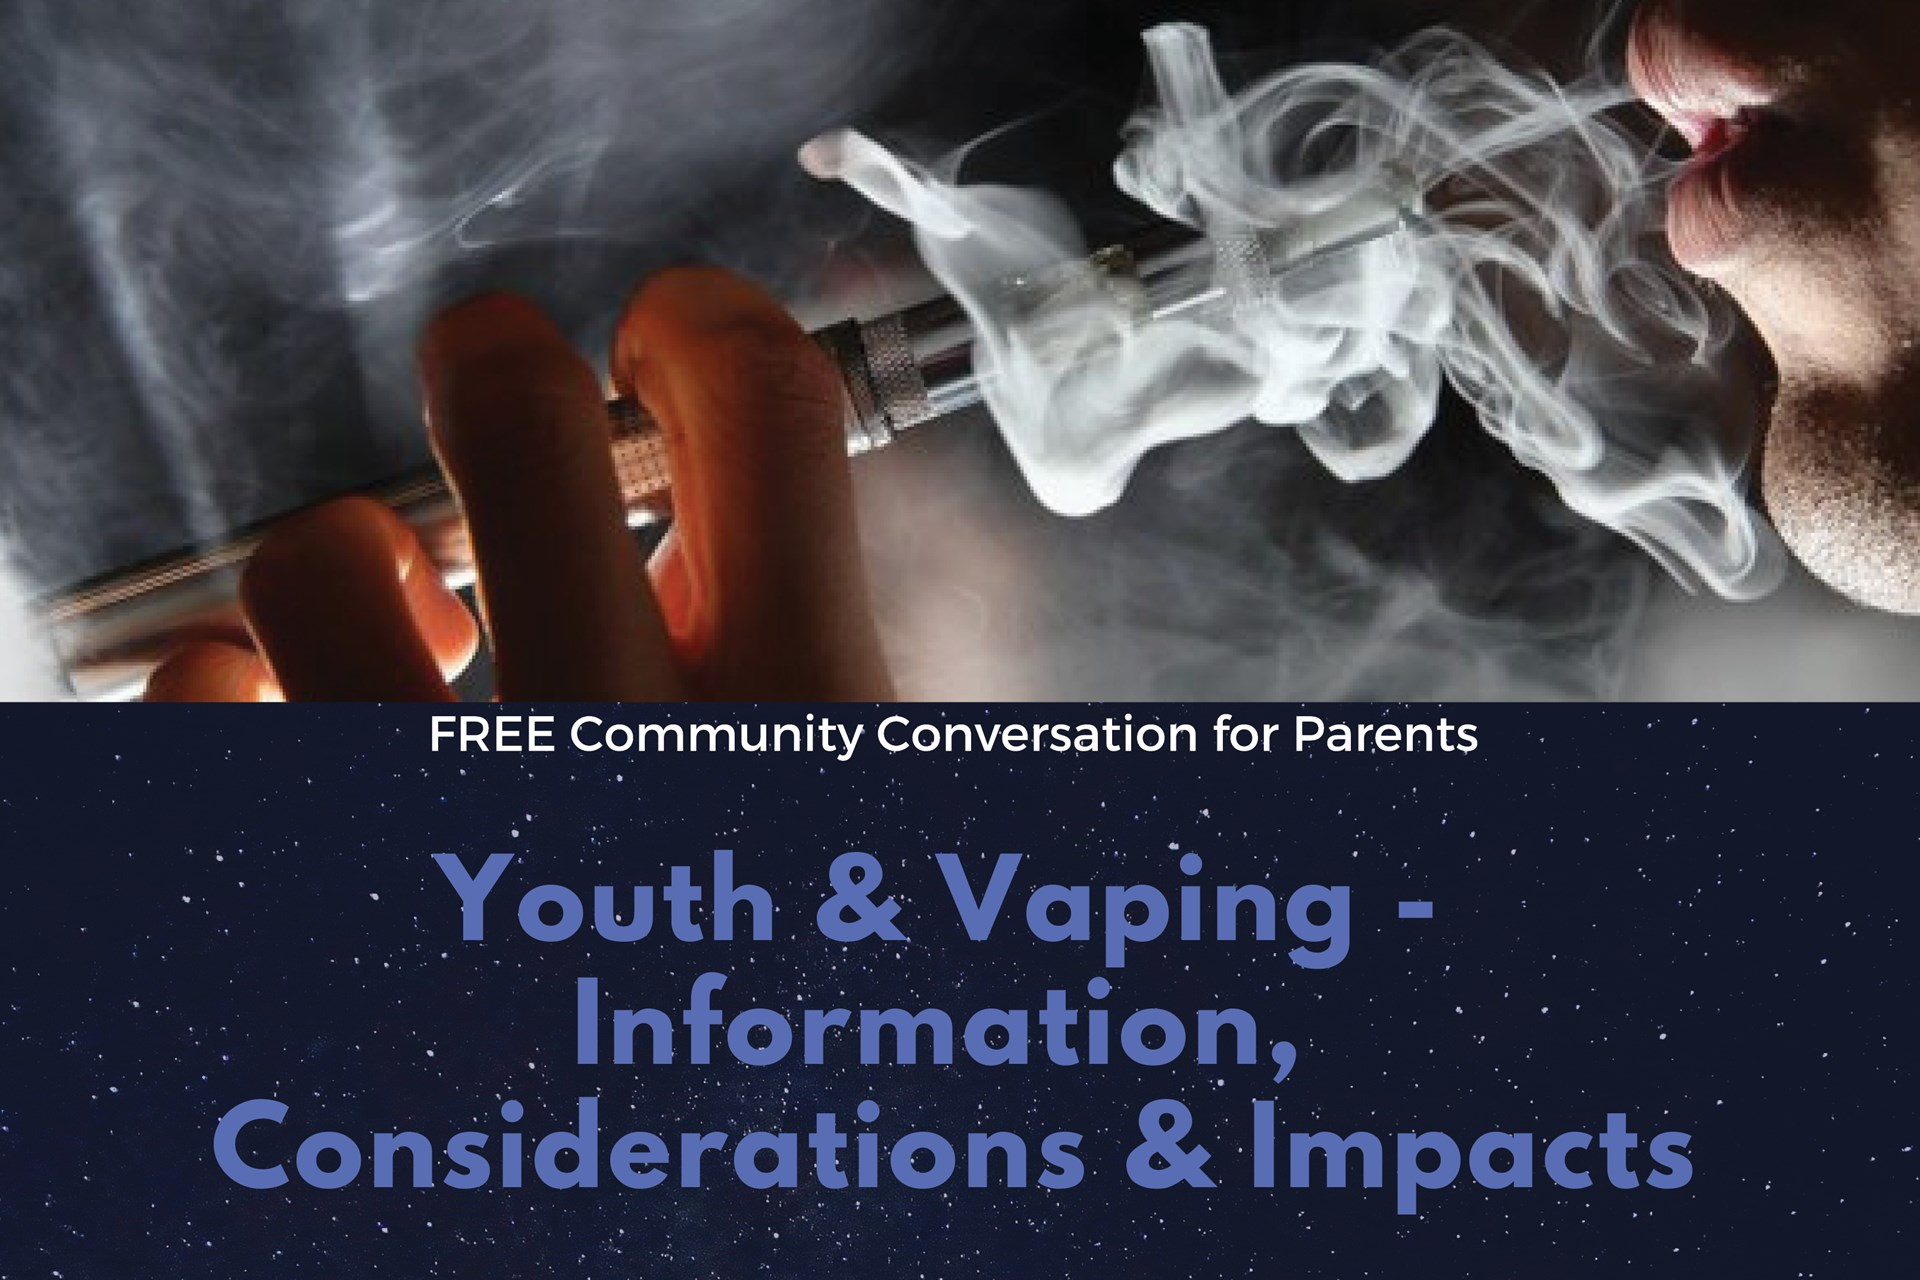 FREE Community Conversation for Parents: Youth & Vaping